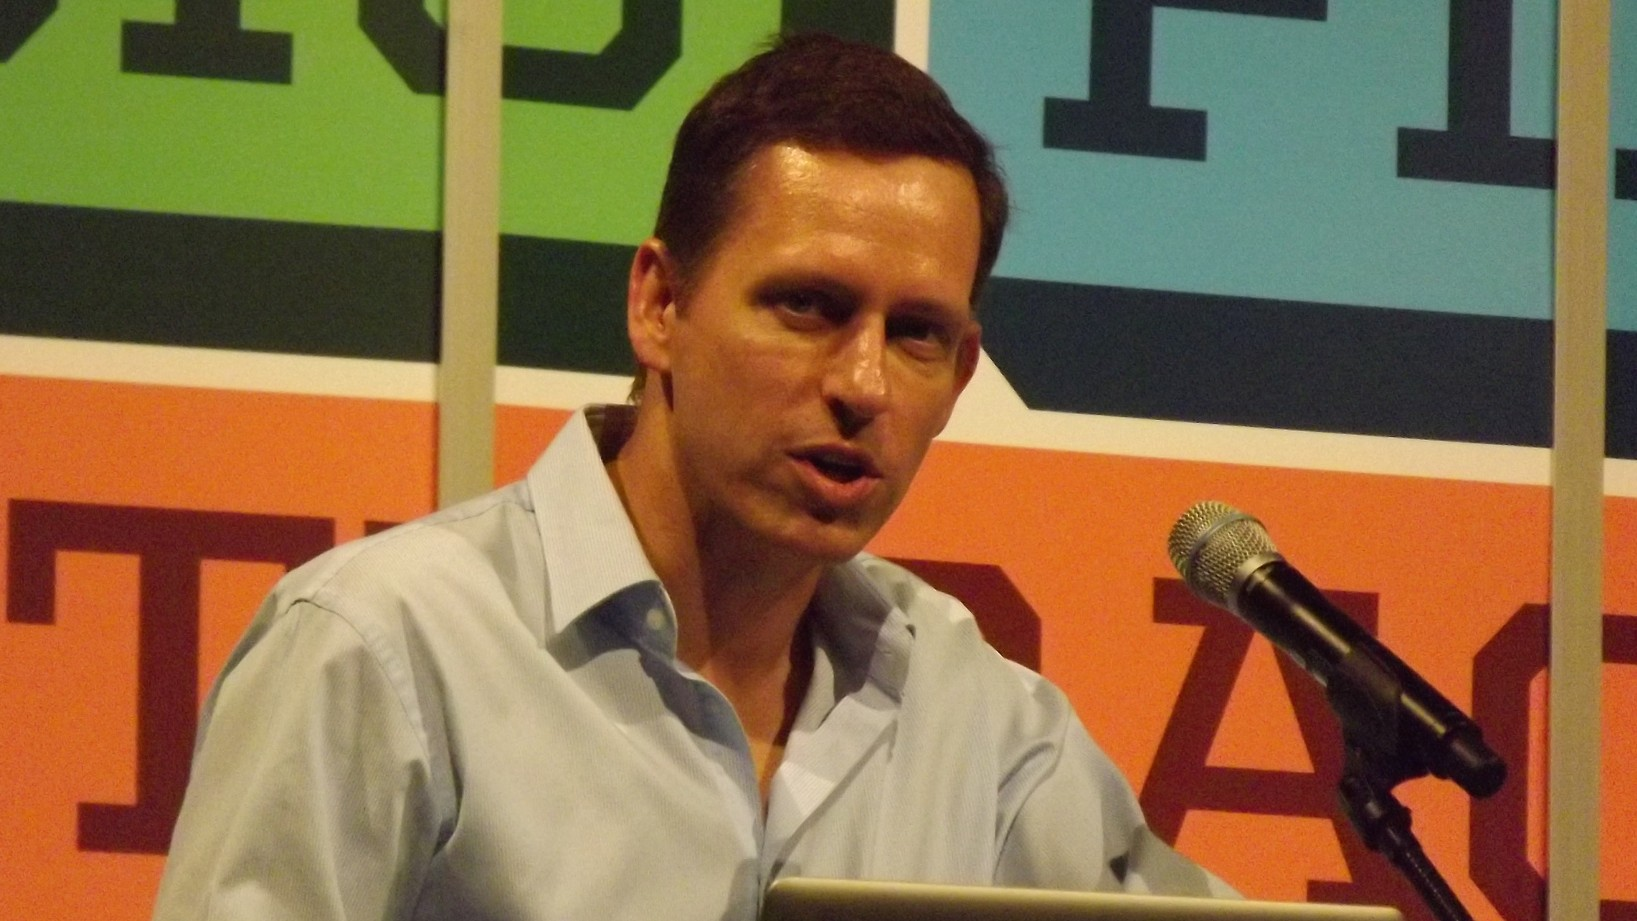 A Startup Is Automating the Lawsuit Strategy Peter Thiel Used to Kill Gawker